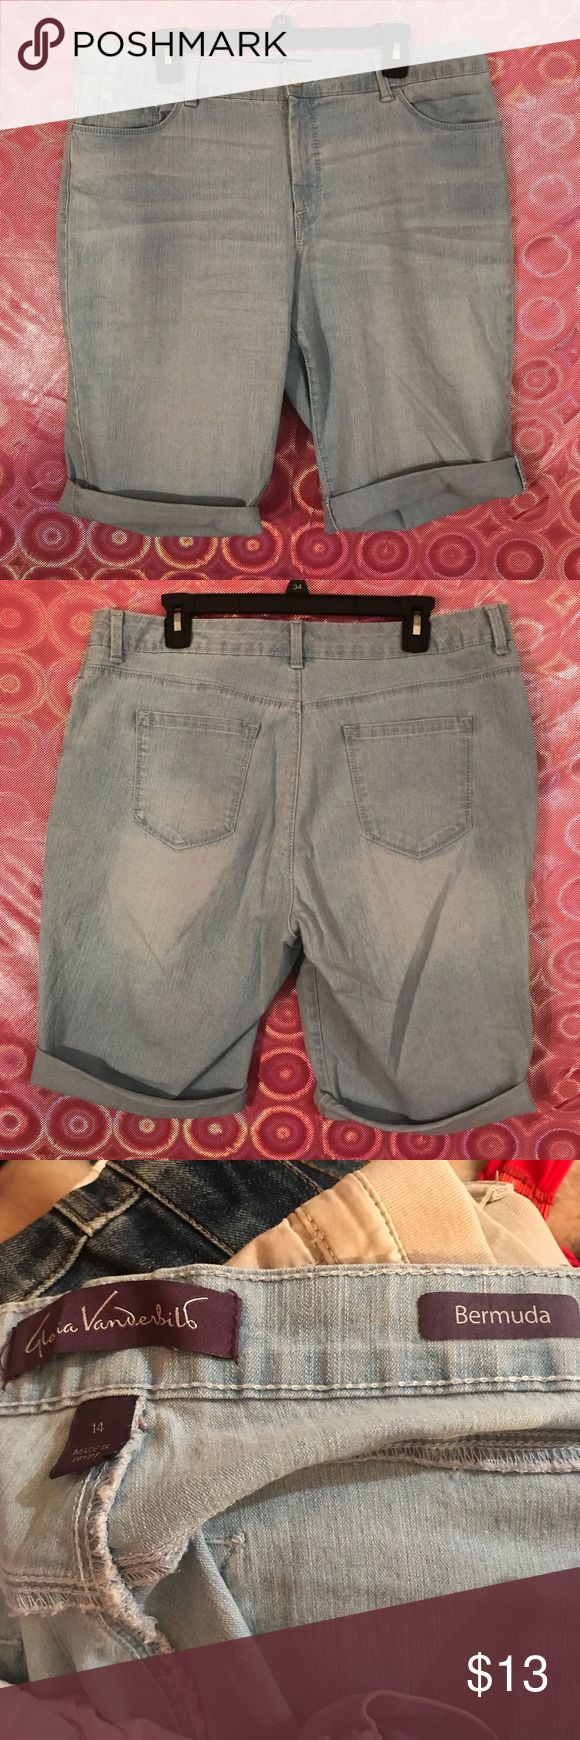 Jean denim Capri shorts size 14 Gloria Vanderbilt These shorts are cute and stretchy! Size 14. Roll them up or roll them down, they are good to go!! 👯♀️👯♂️ available now!! Gloria Vanderbilt Shorts Jean Shorts